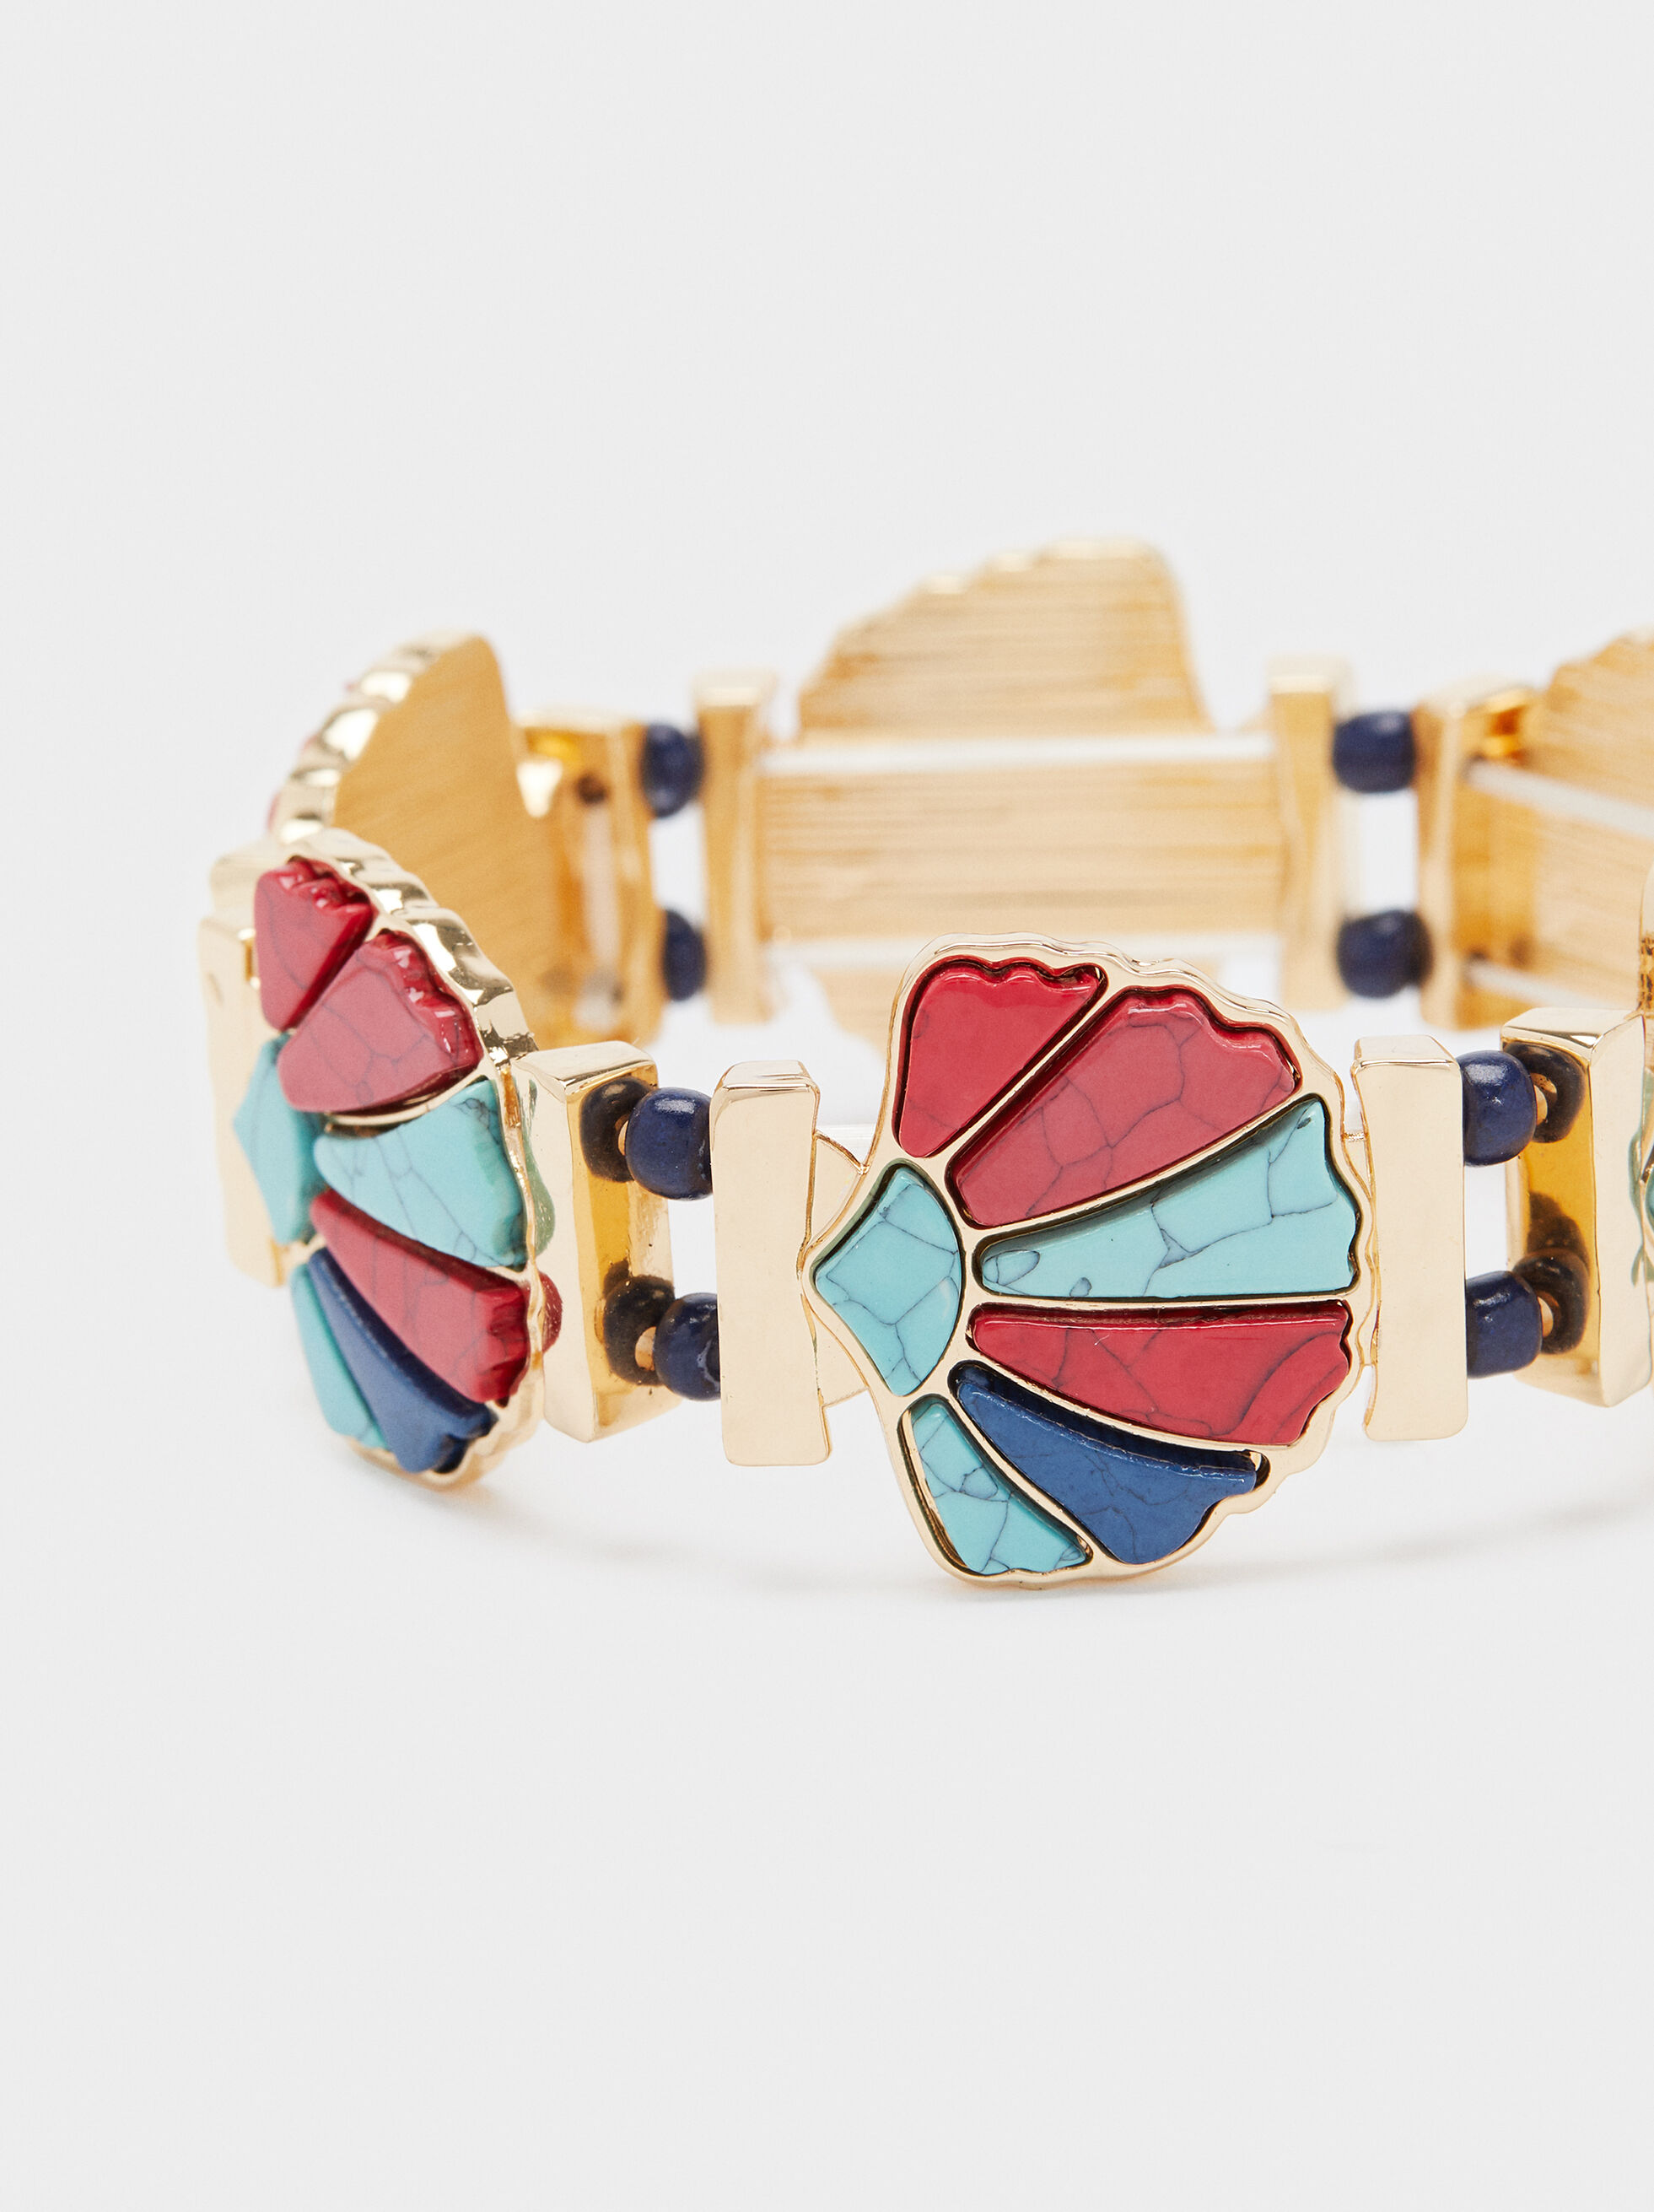 Recife Elastic Bracelet With Resin Details, Multicolor, hi-res